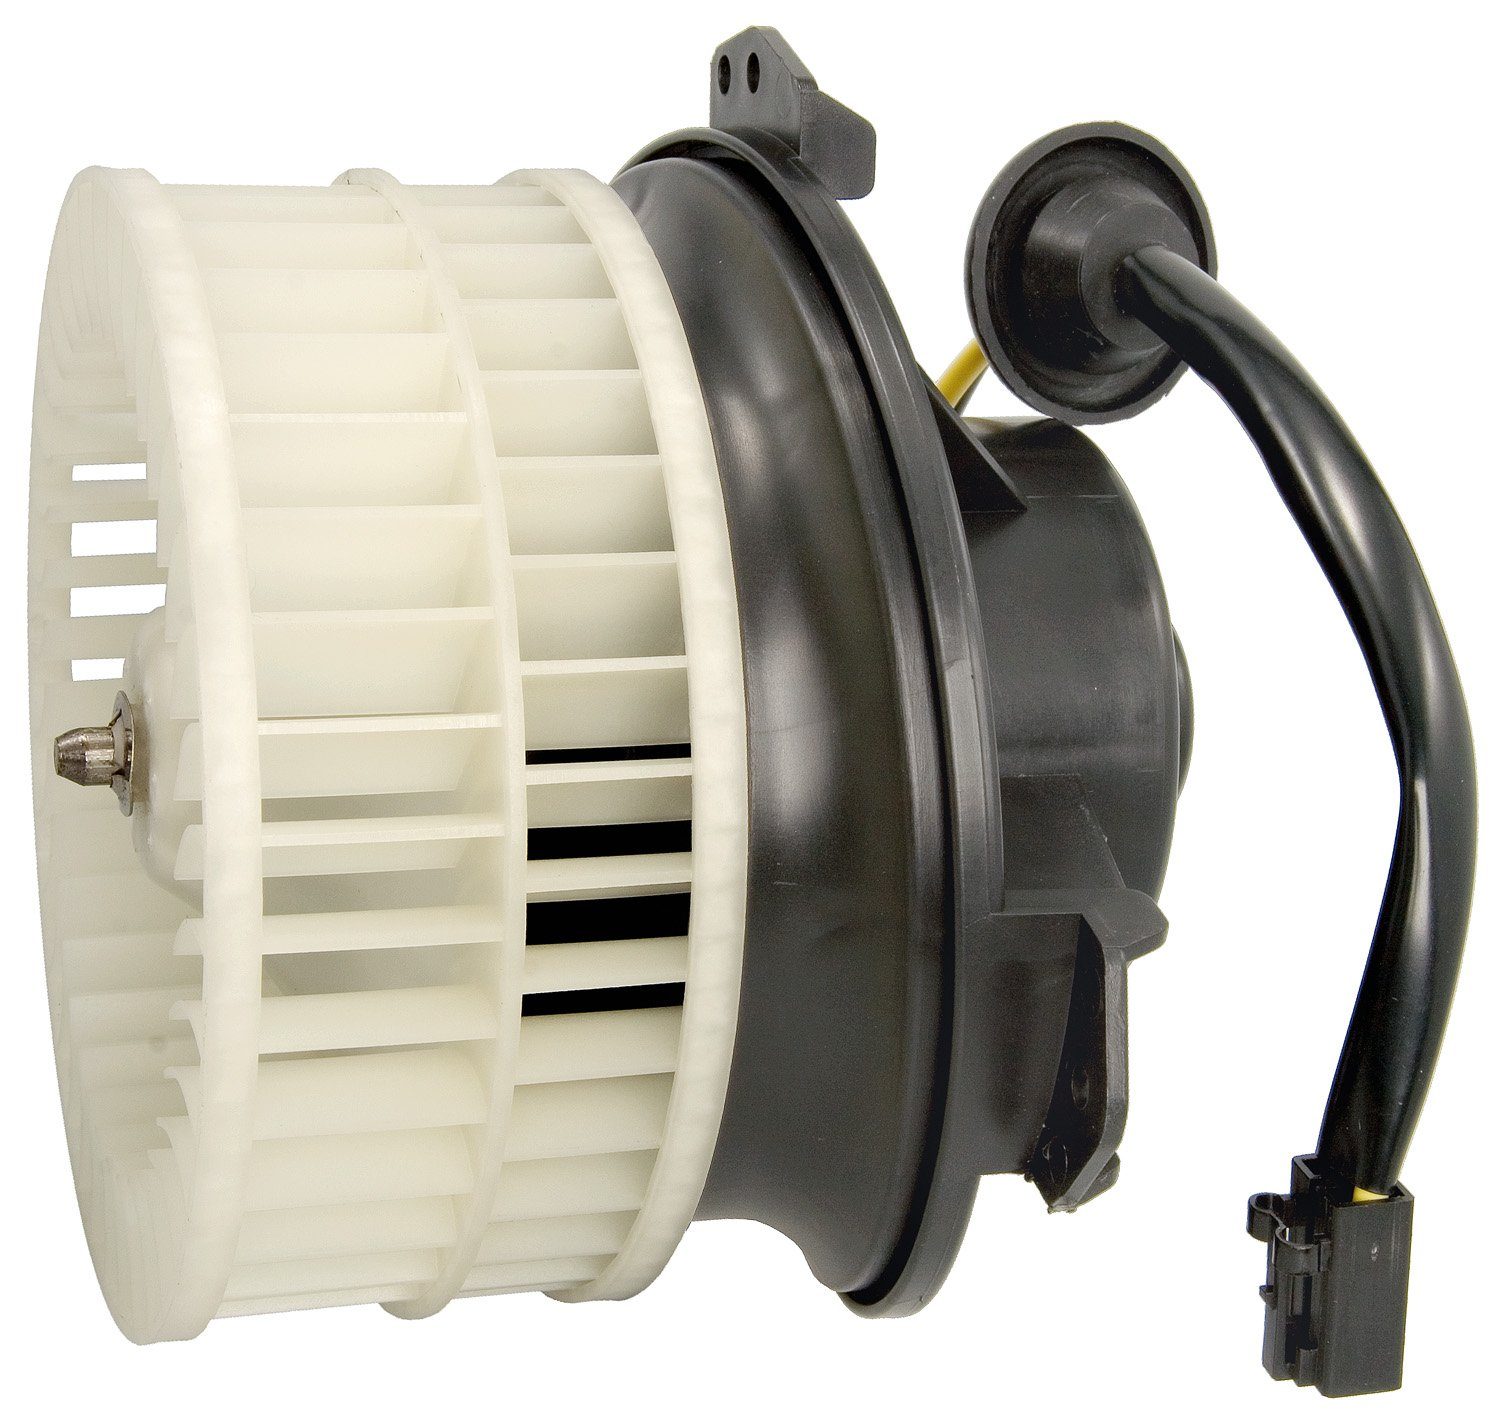 Four Seasons/Trumark 75739 Blower Motor with Wheel